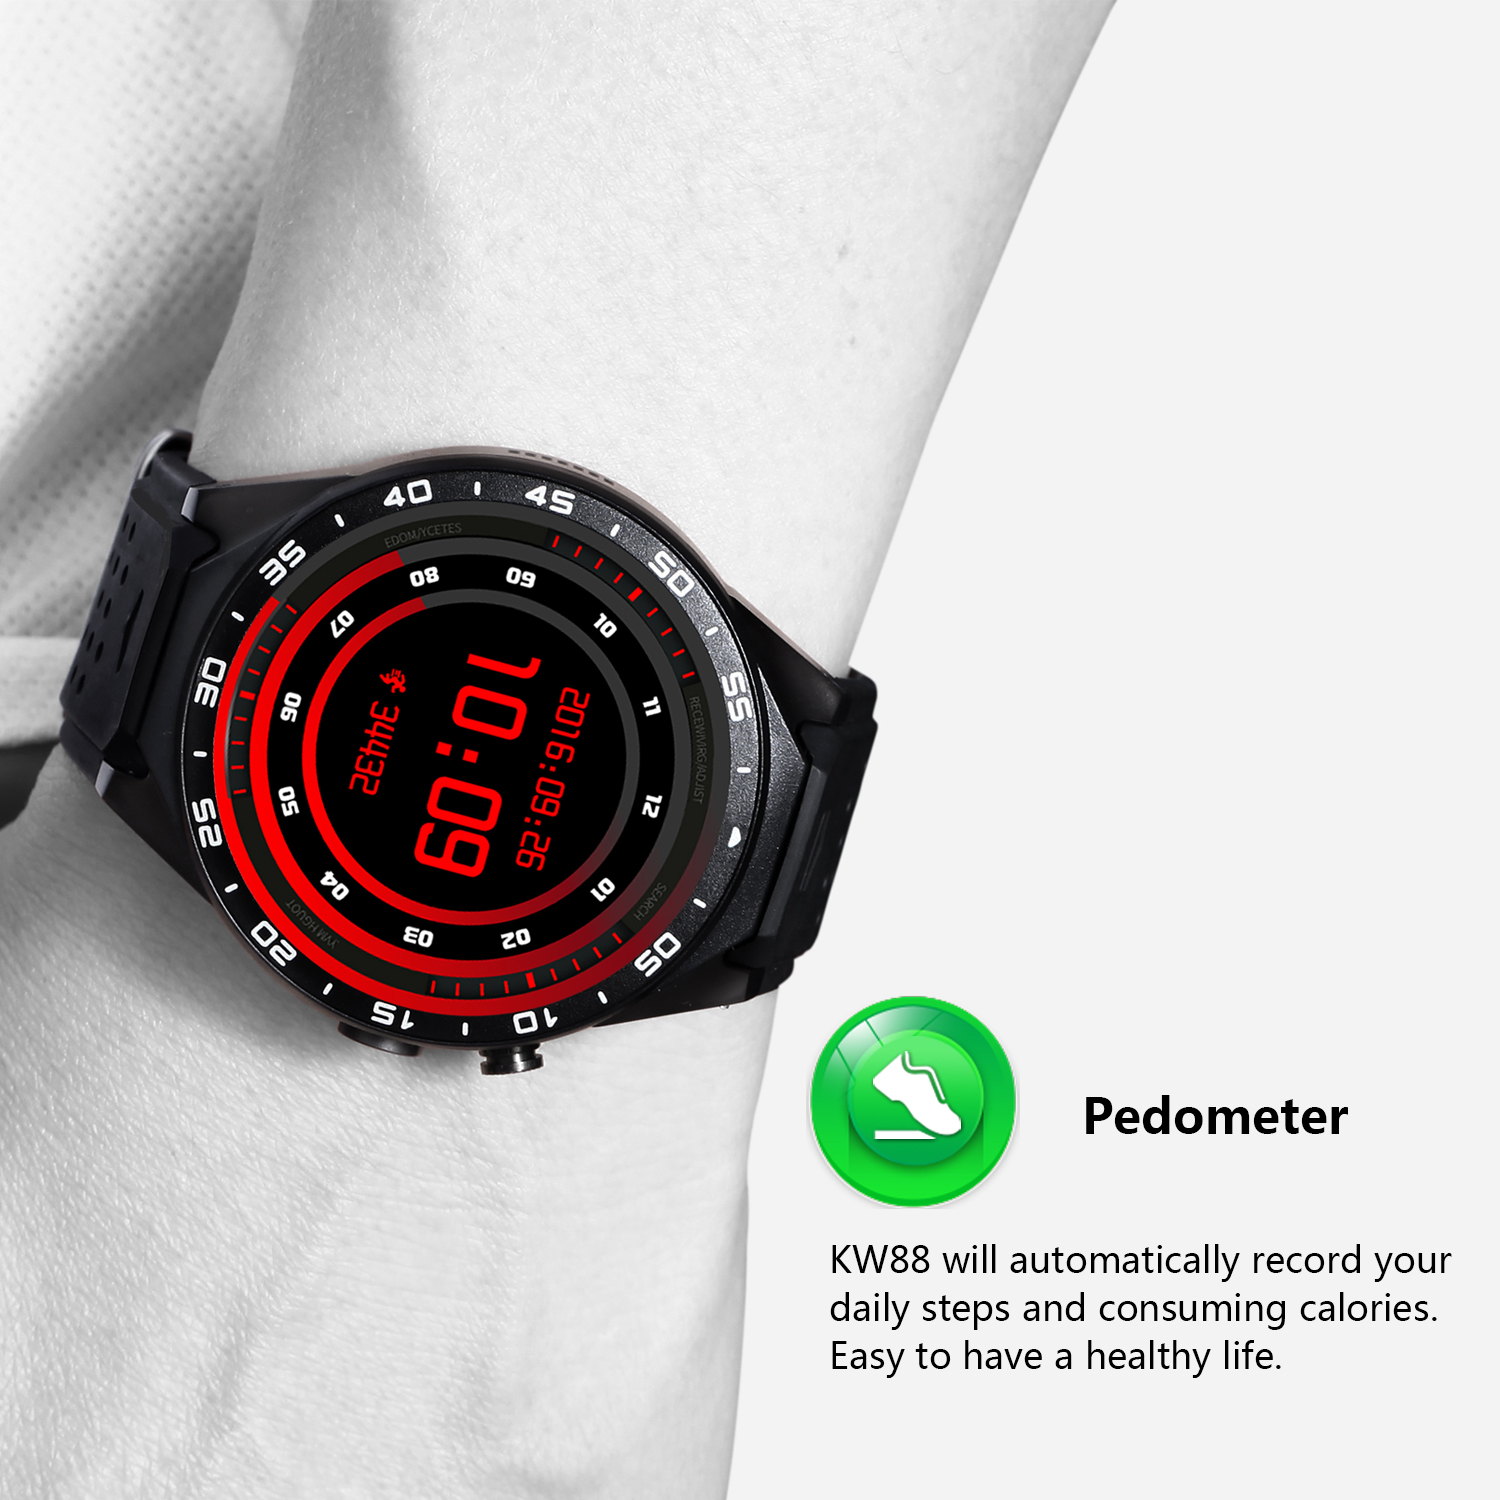 ot01 kw88 Android 5.1 Smart Watch 512MB + 4GB Bluetooth 4.0 WIFI 3G Smartwatch Phone Wristwatch Support Google Voice GPS Map no 1 d5 bluetooth smart watch phone android 4 4 smartwatch waterproof heart rate mtk6572 1 3 inch gps 4g 512m wristwatch for ios